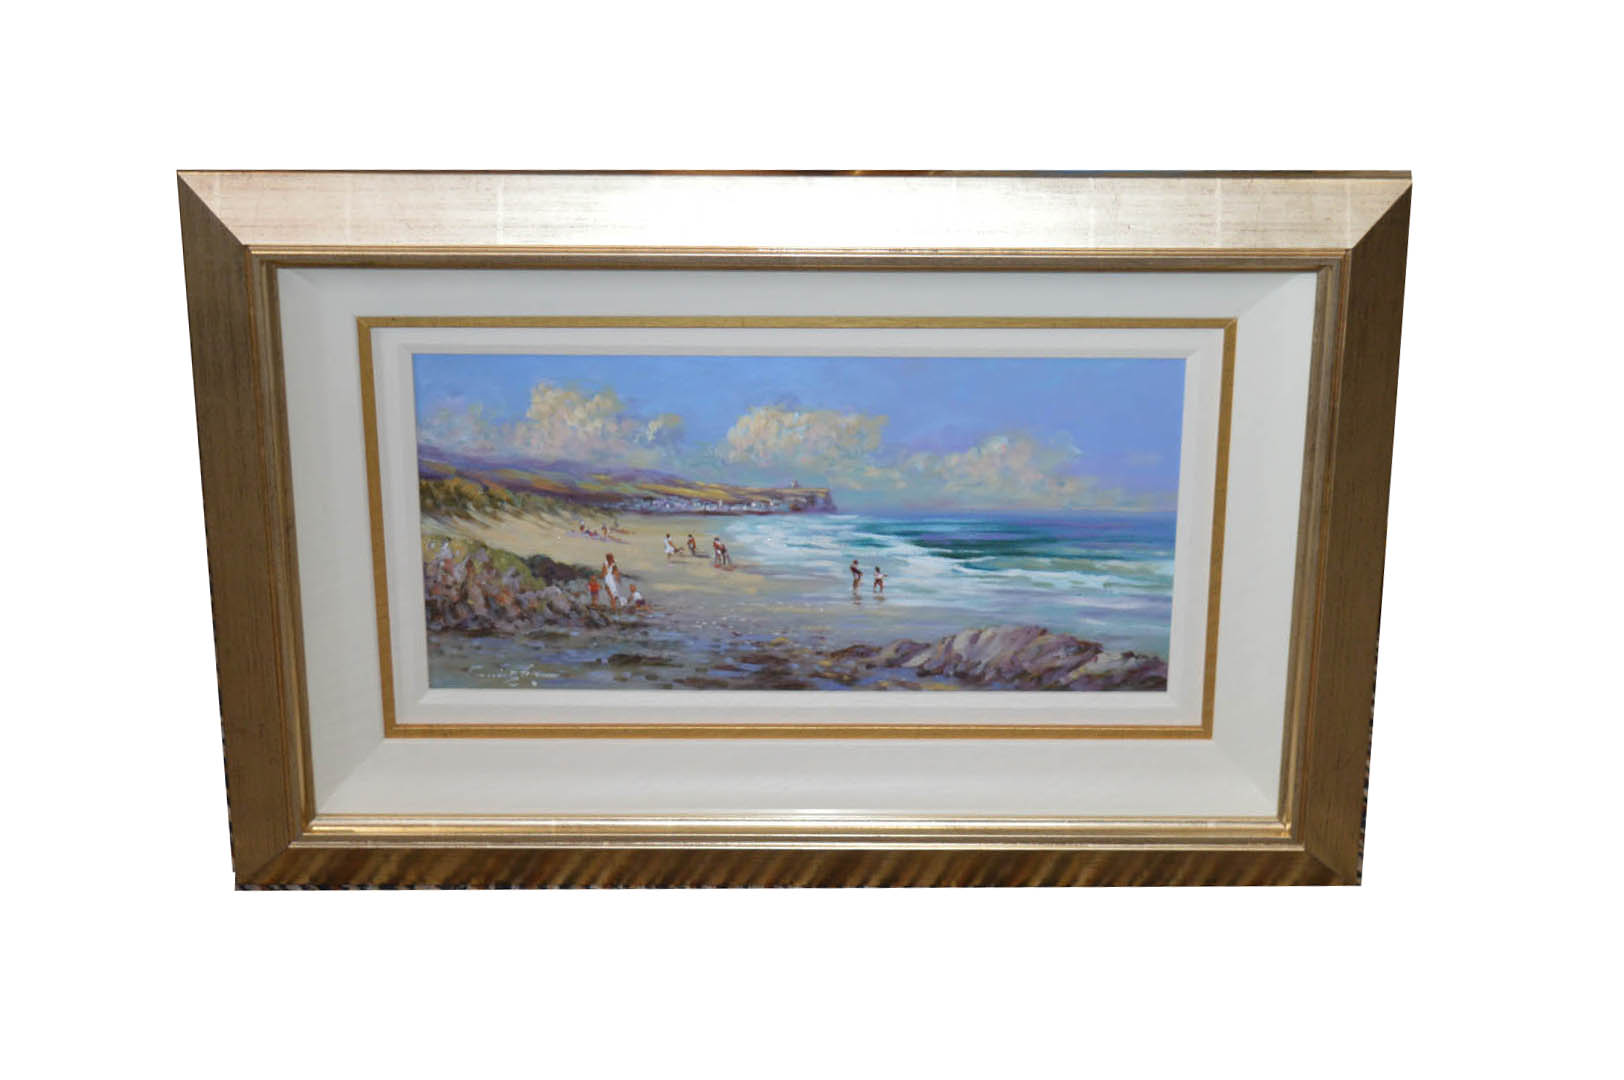 Lot 279 - A Framed Oil Painting 'On Portstewart Strand' - William Cunningham